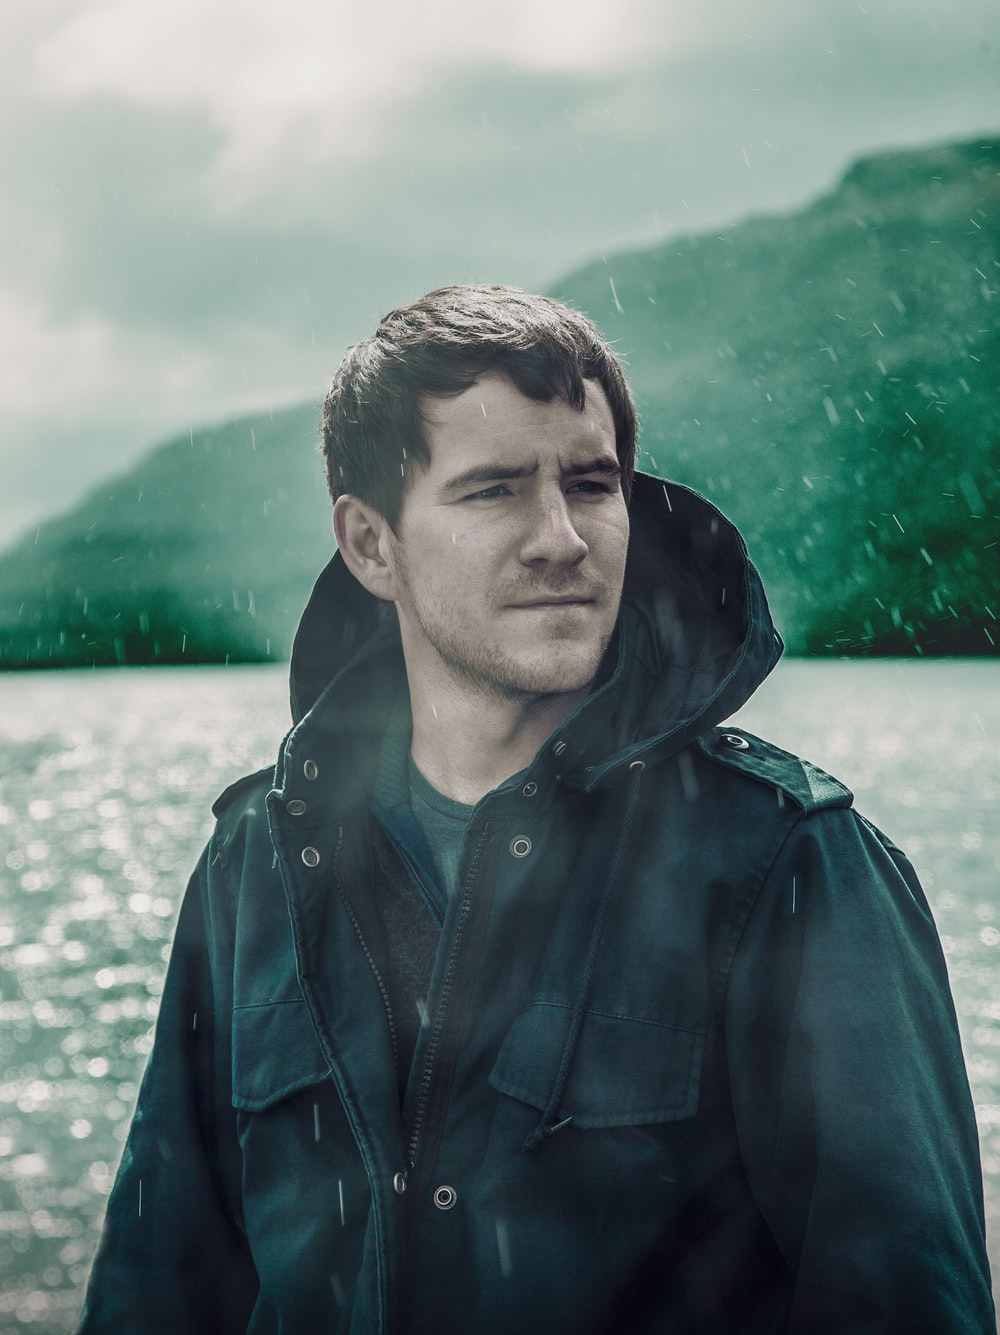 man wearing black zip-up jacket standing near body of water in rainy day